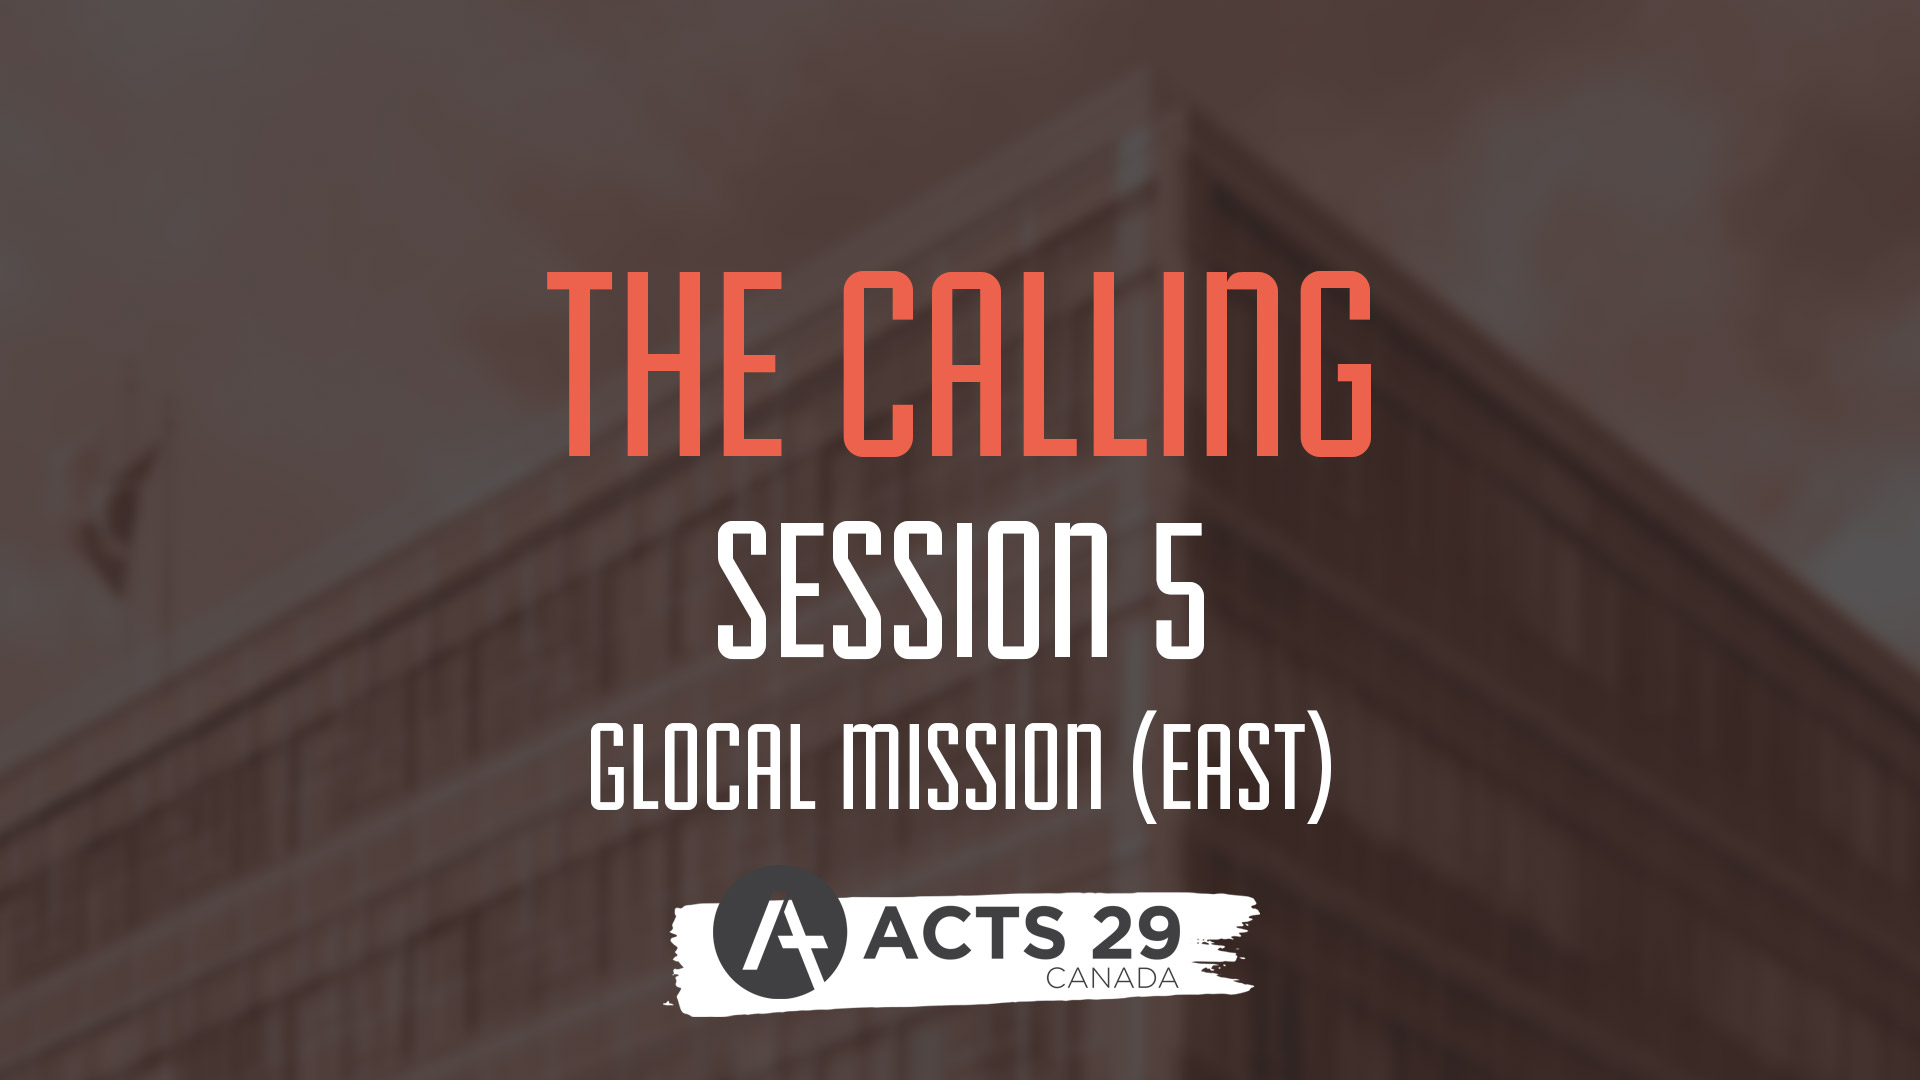 The Calling - Session 5 - East